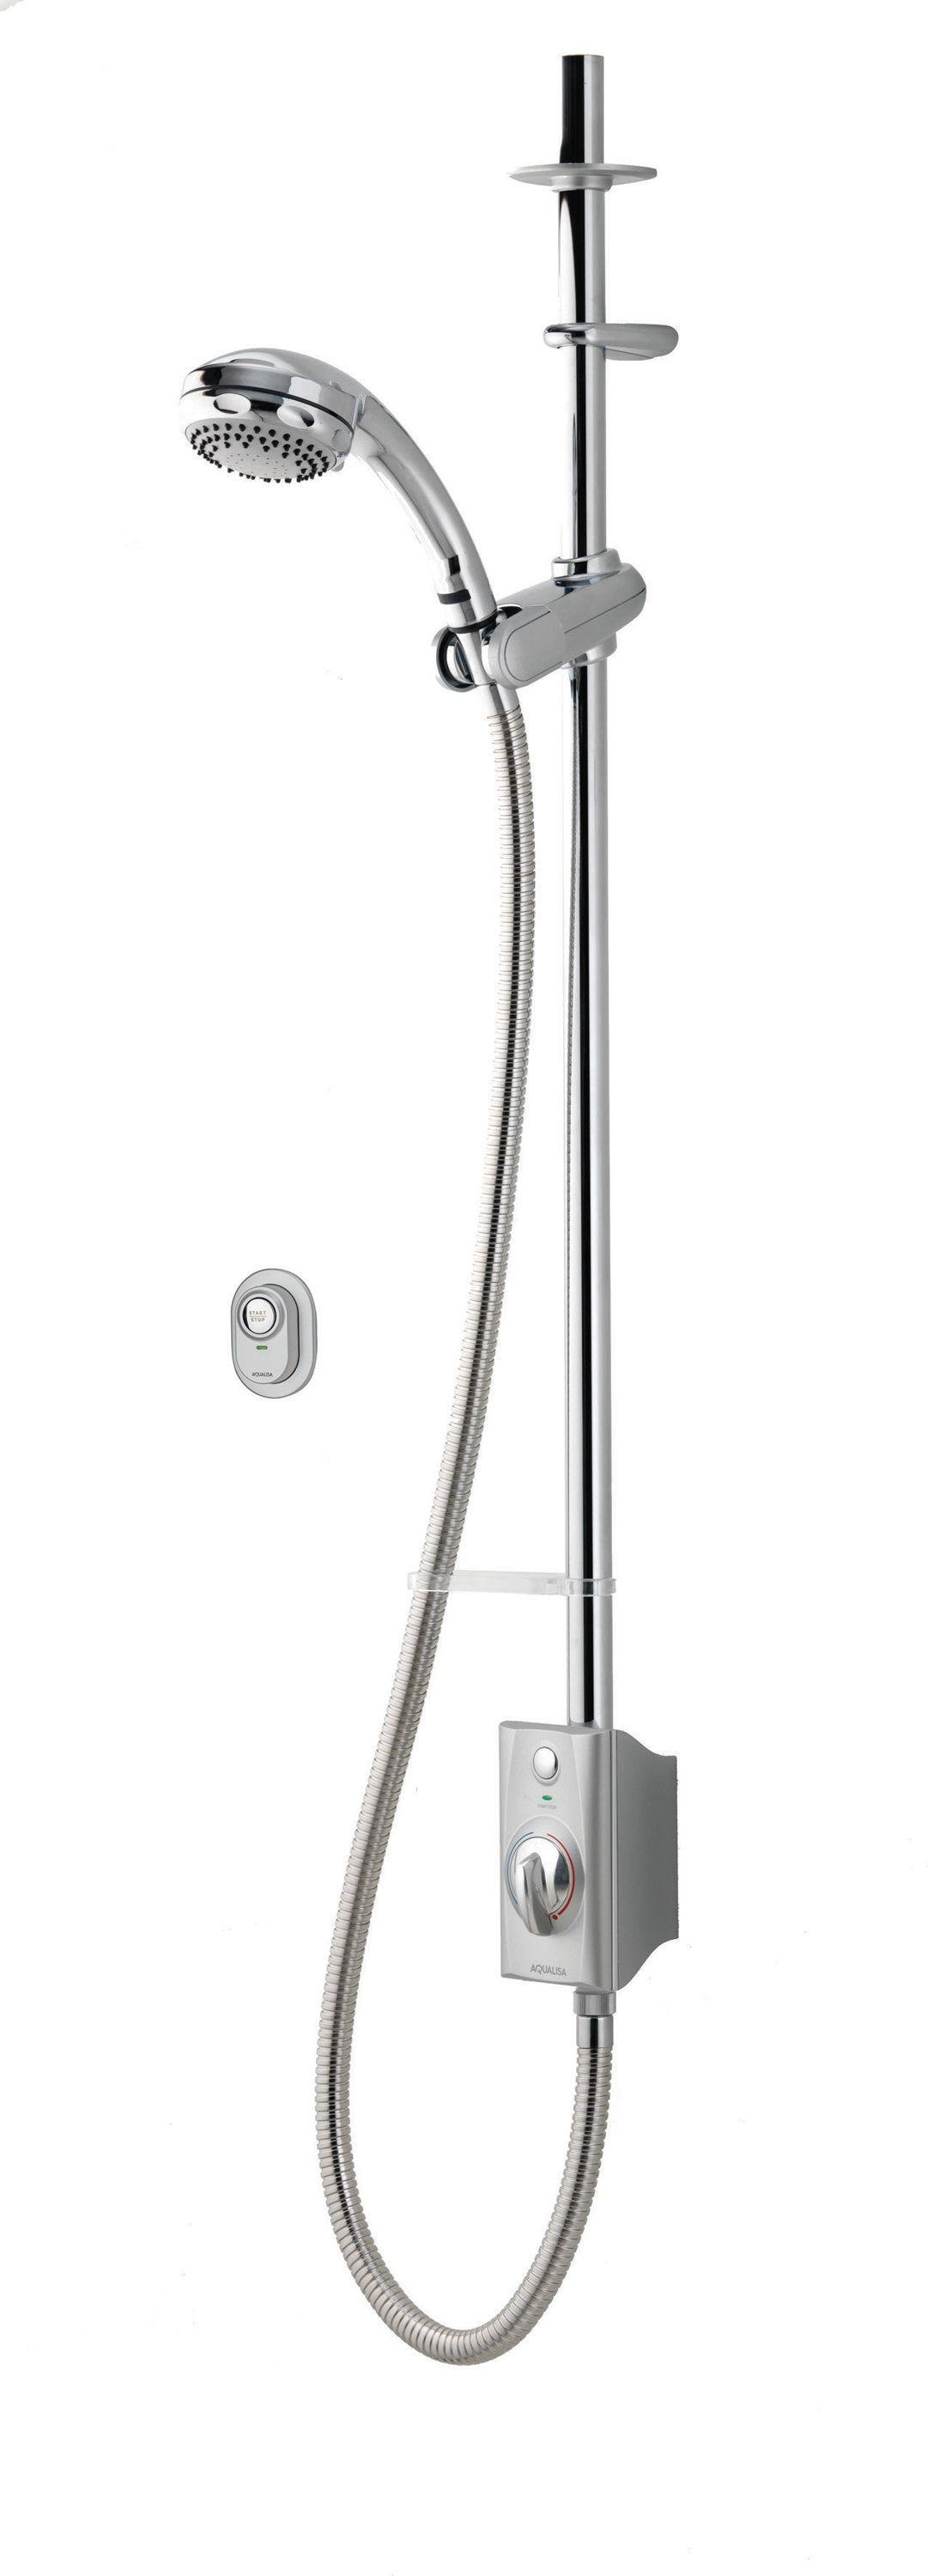 Aqualisa AQ Digital Exposed Gravity Pumped Shower - Chrome